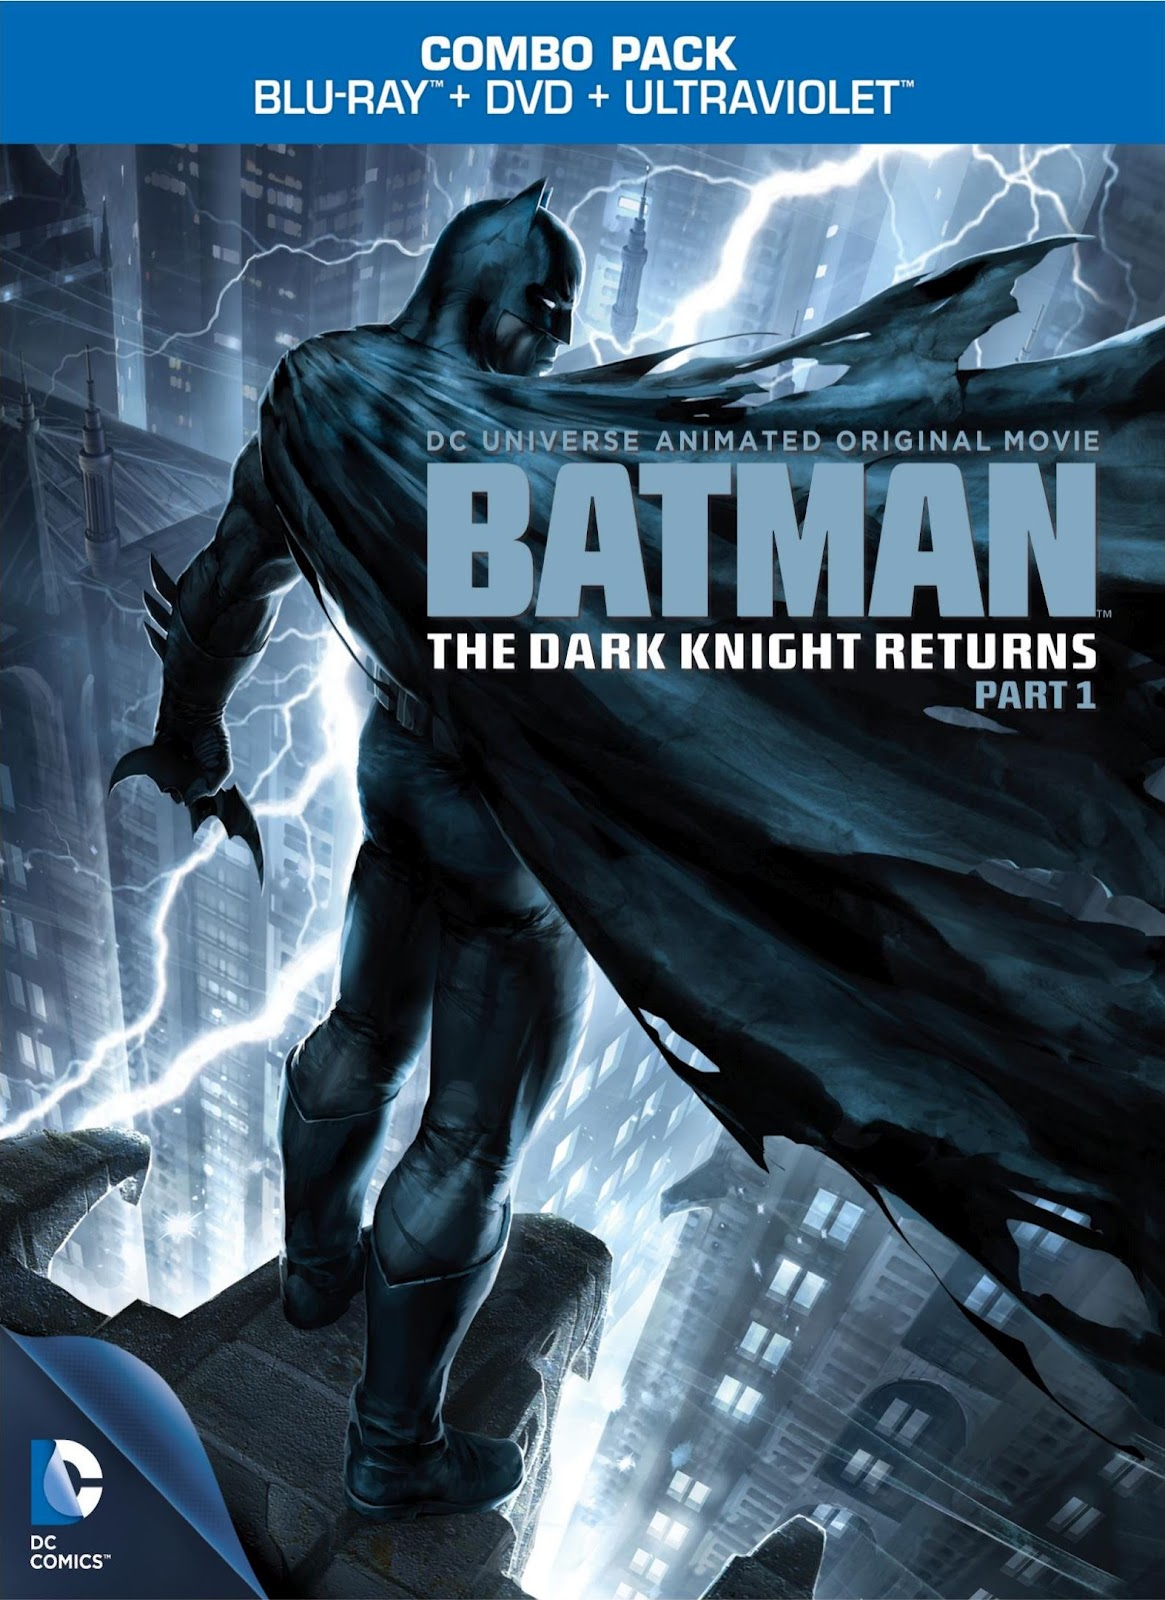 http://3.bp.blogspot.com/-tUtkhc_nuEk/UFs2BntrmgI/AAAAAAAAKdU/ptEyLzEi624/s1600/batman-the-dark-knight-returns-part-1-blu-ray-cover-48.jpg